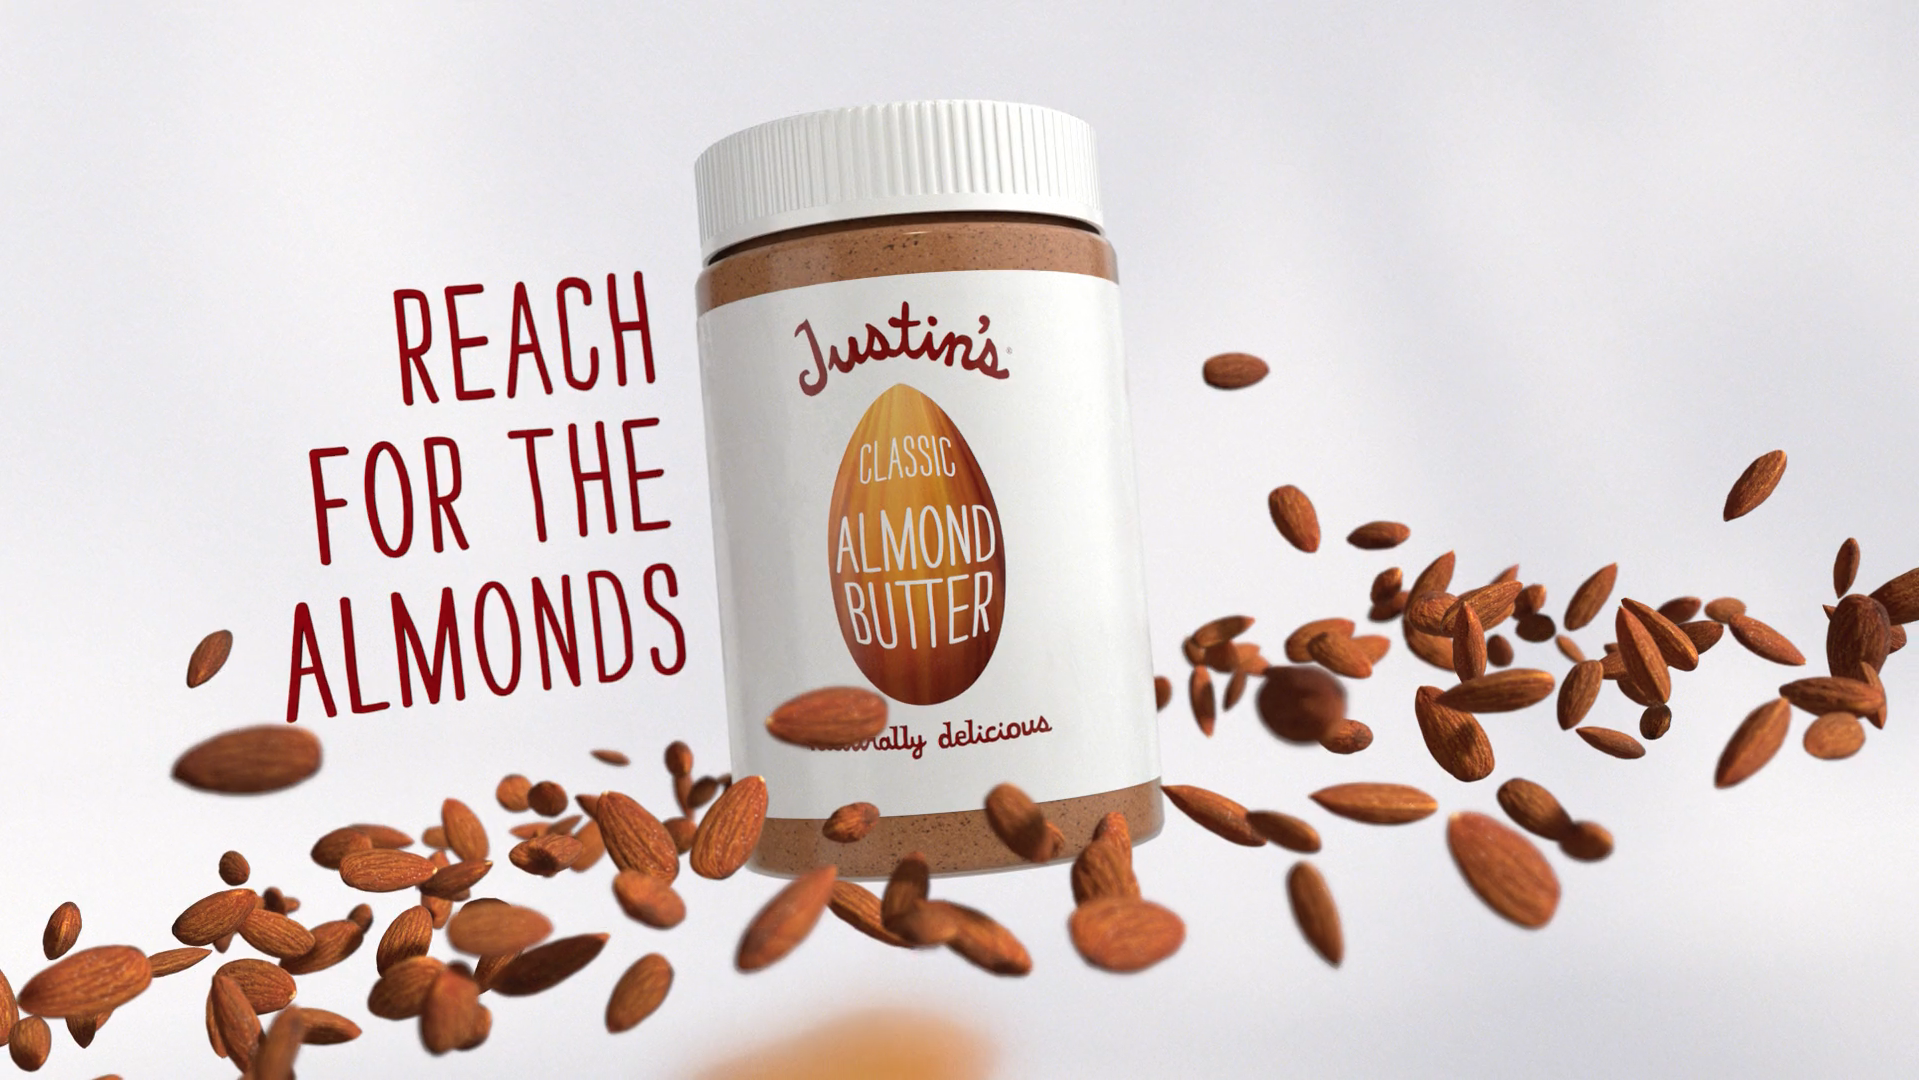 Justin's: Live a little nutty campaign.